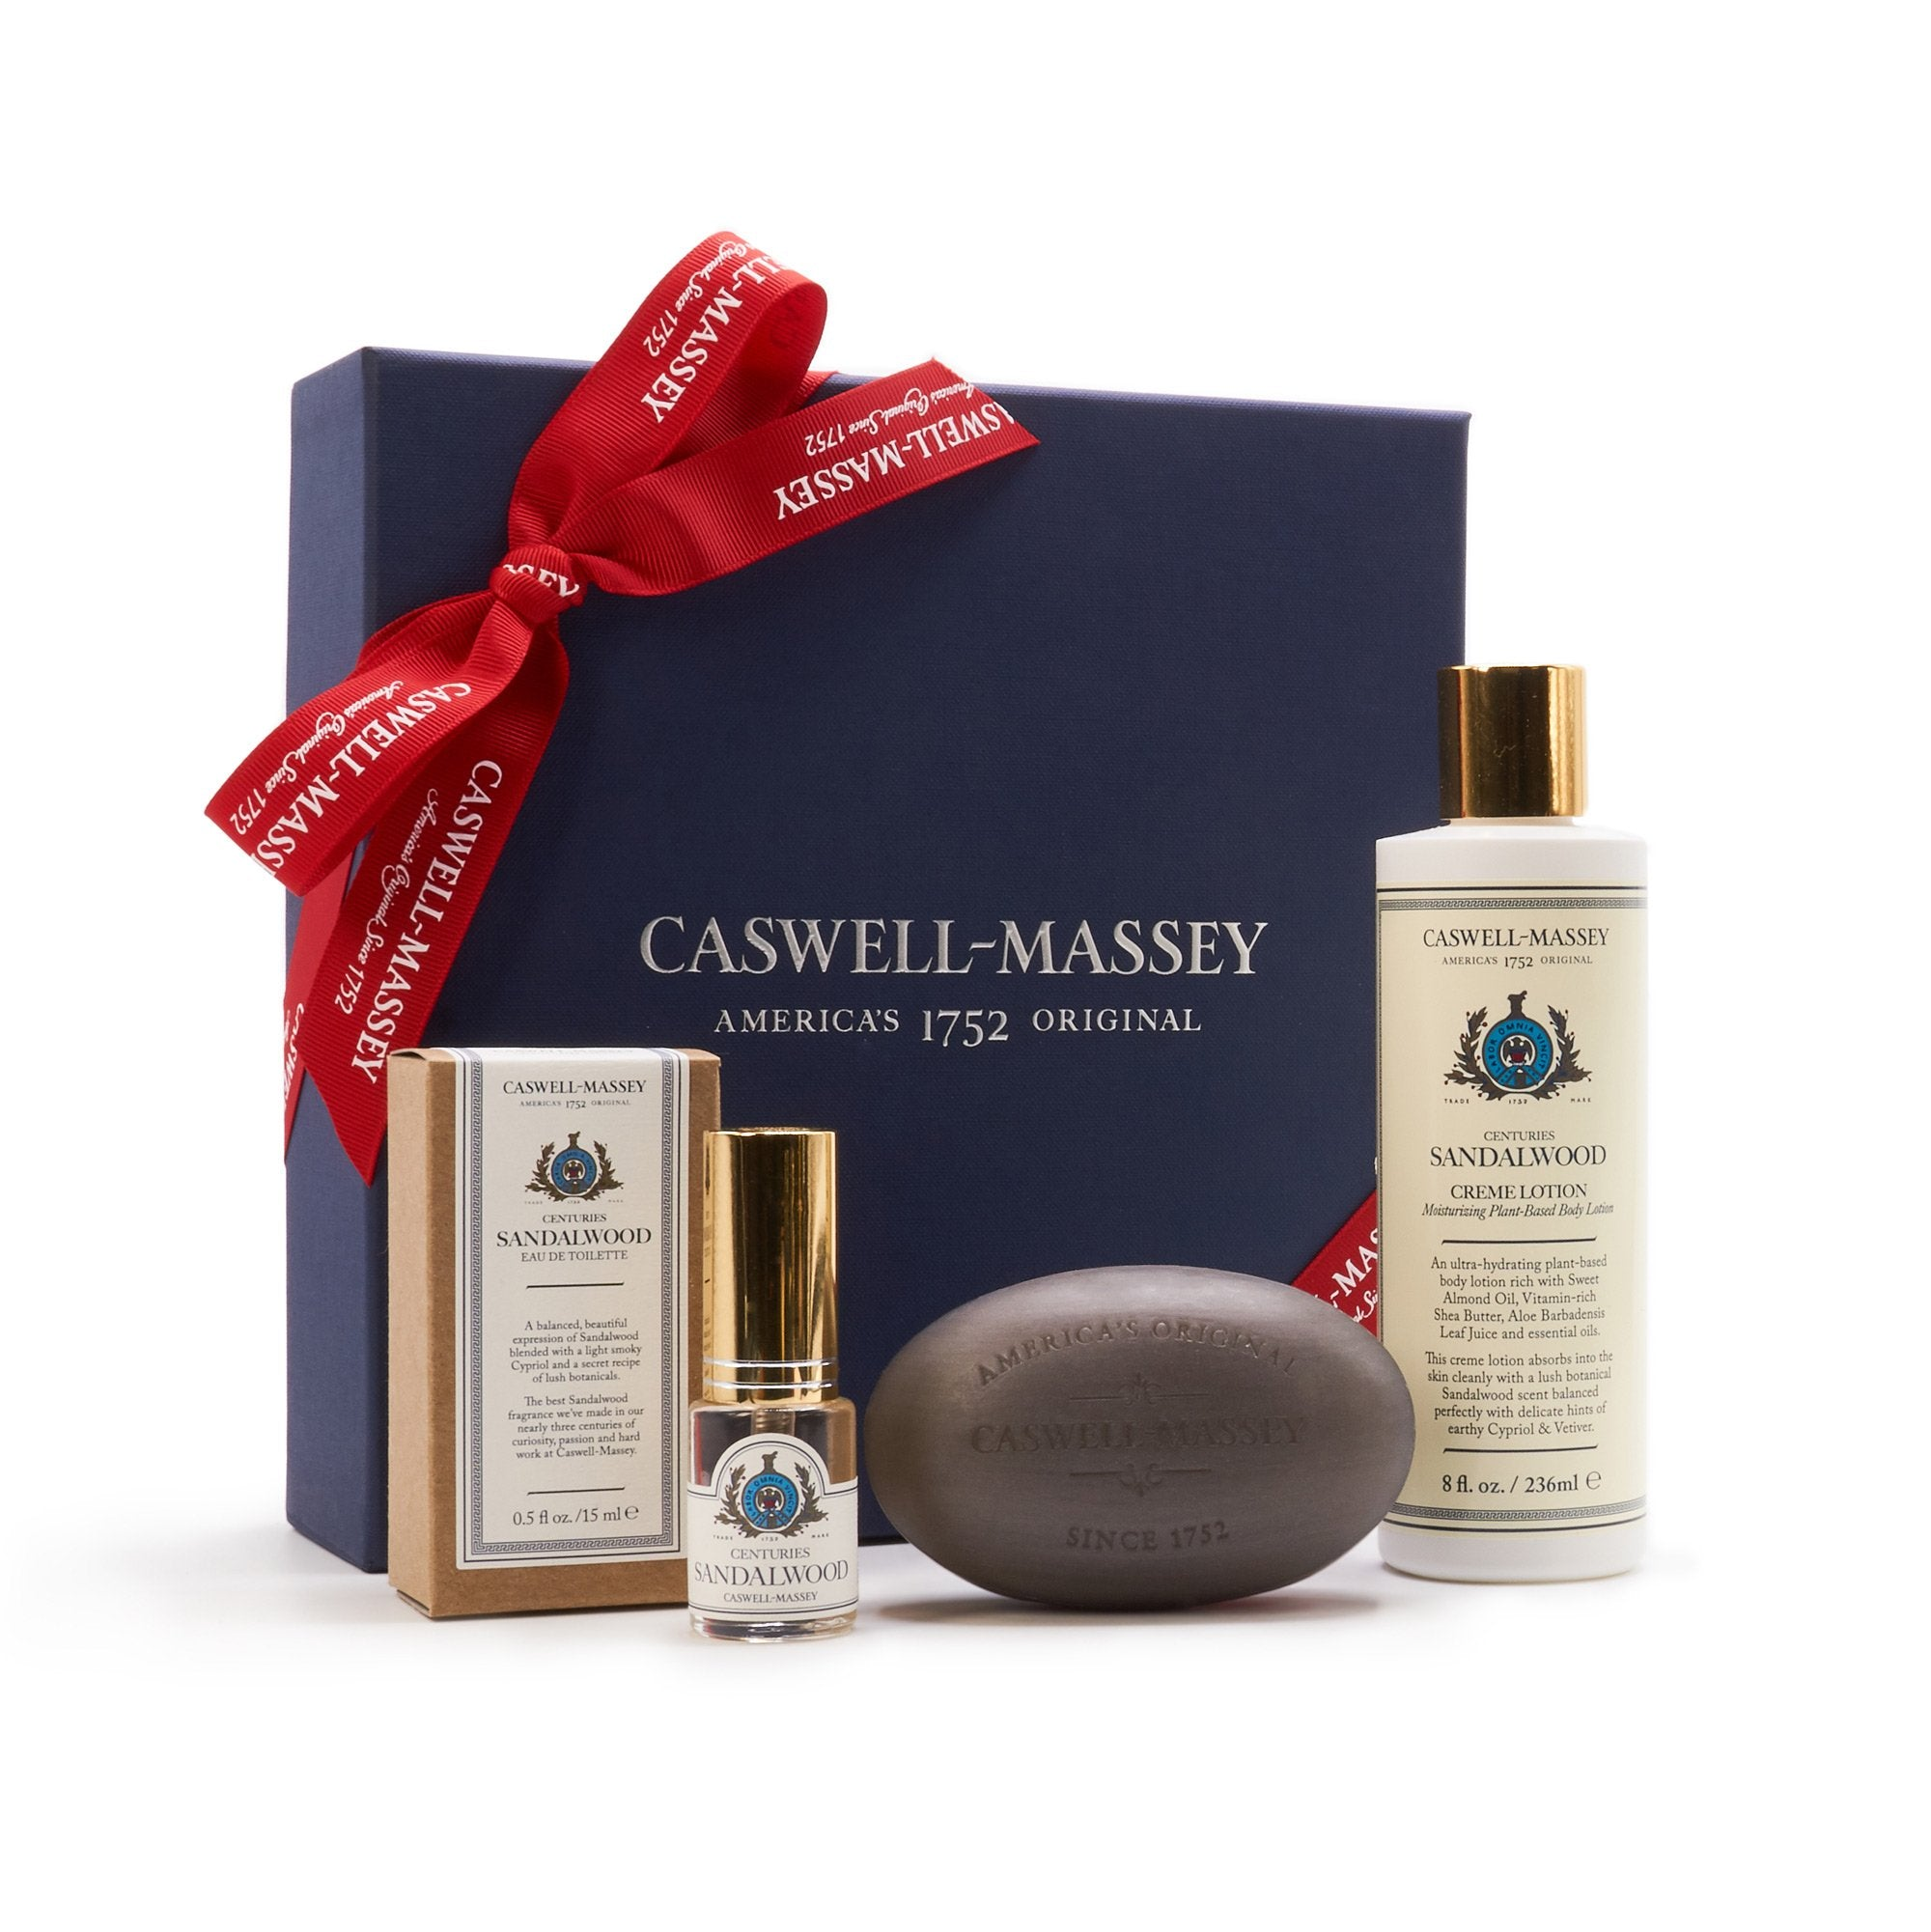 Centuries Sandalwood Gift Set